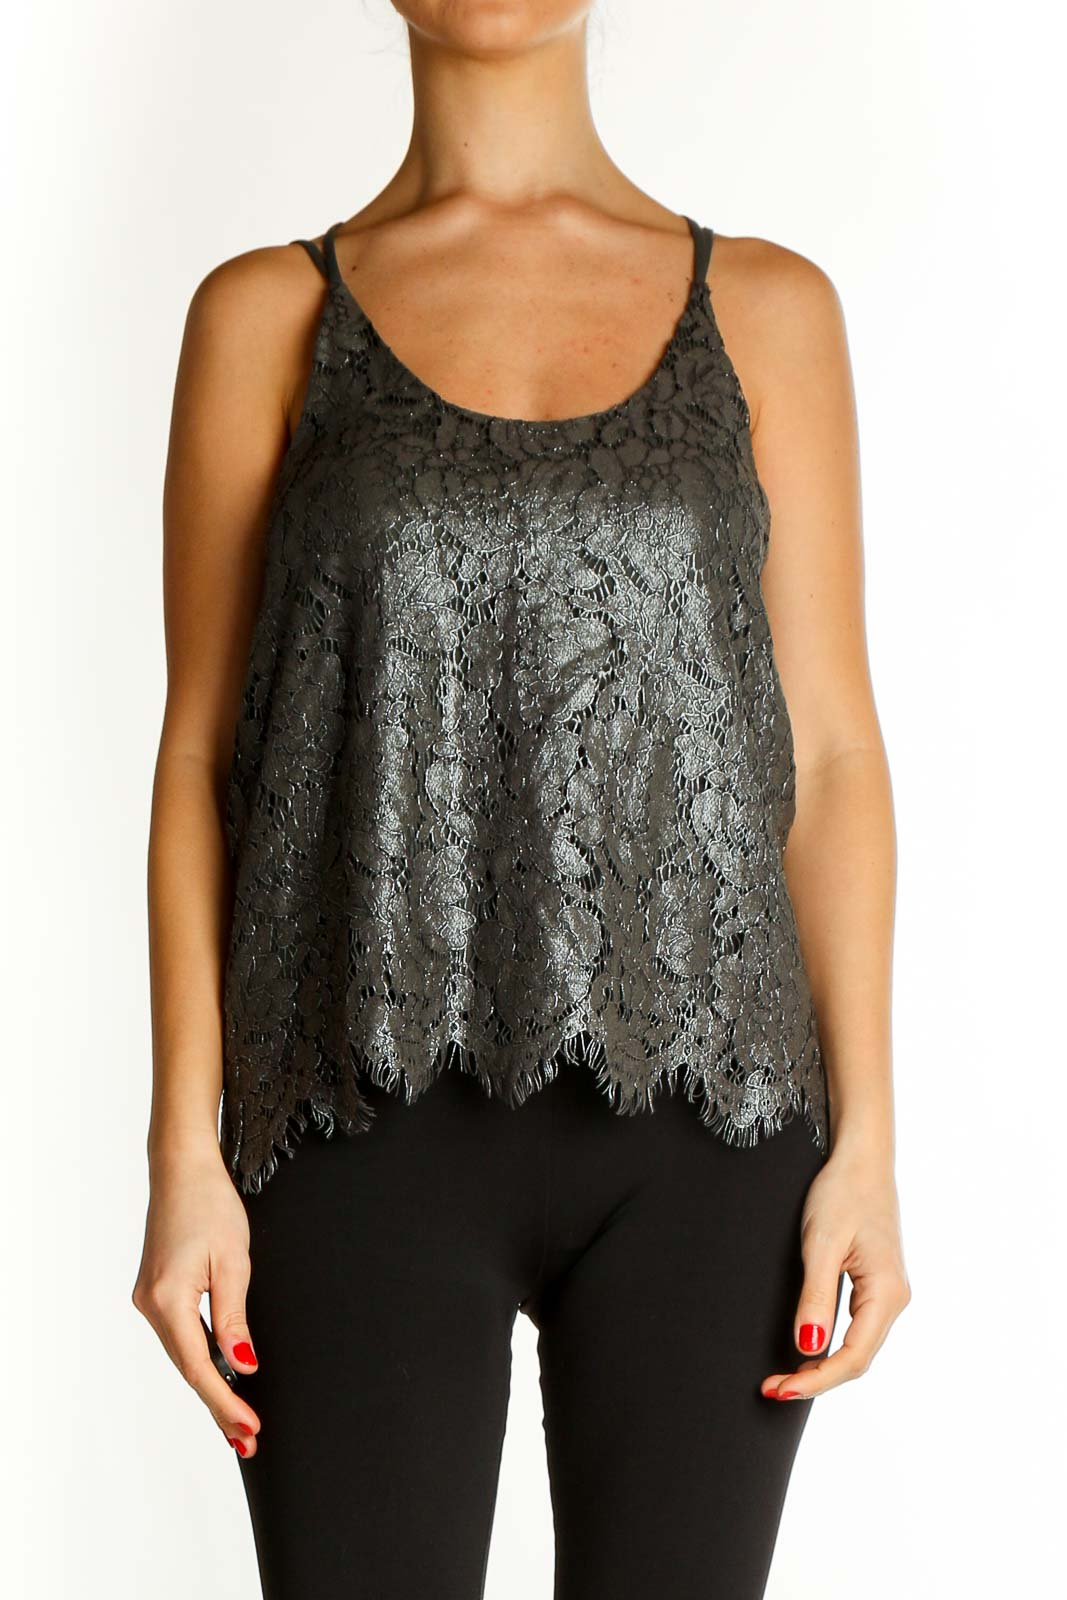 Gray Textured Chic Top Front